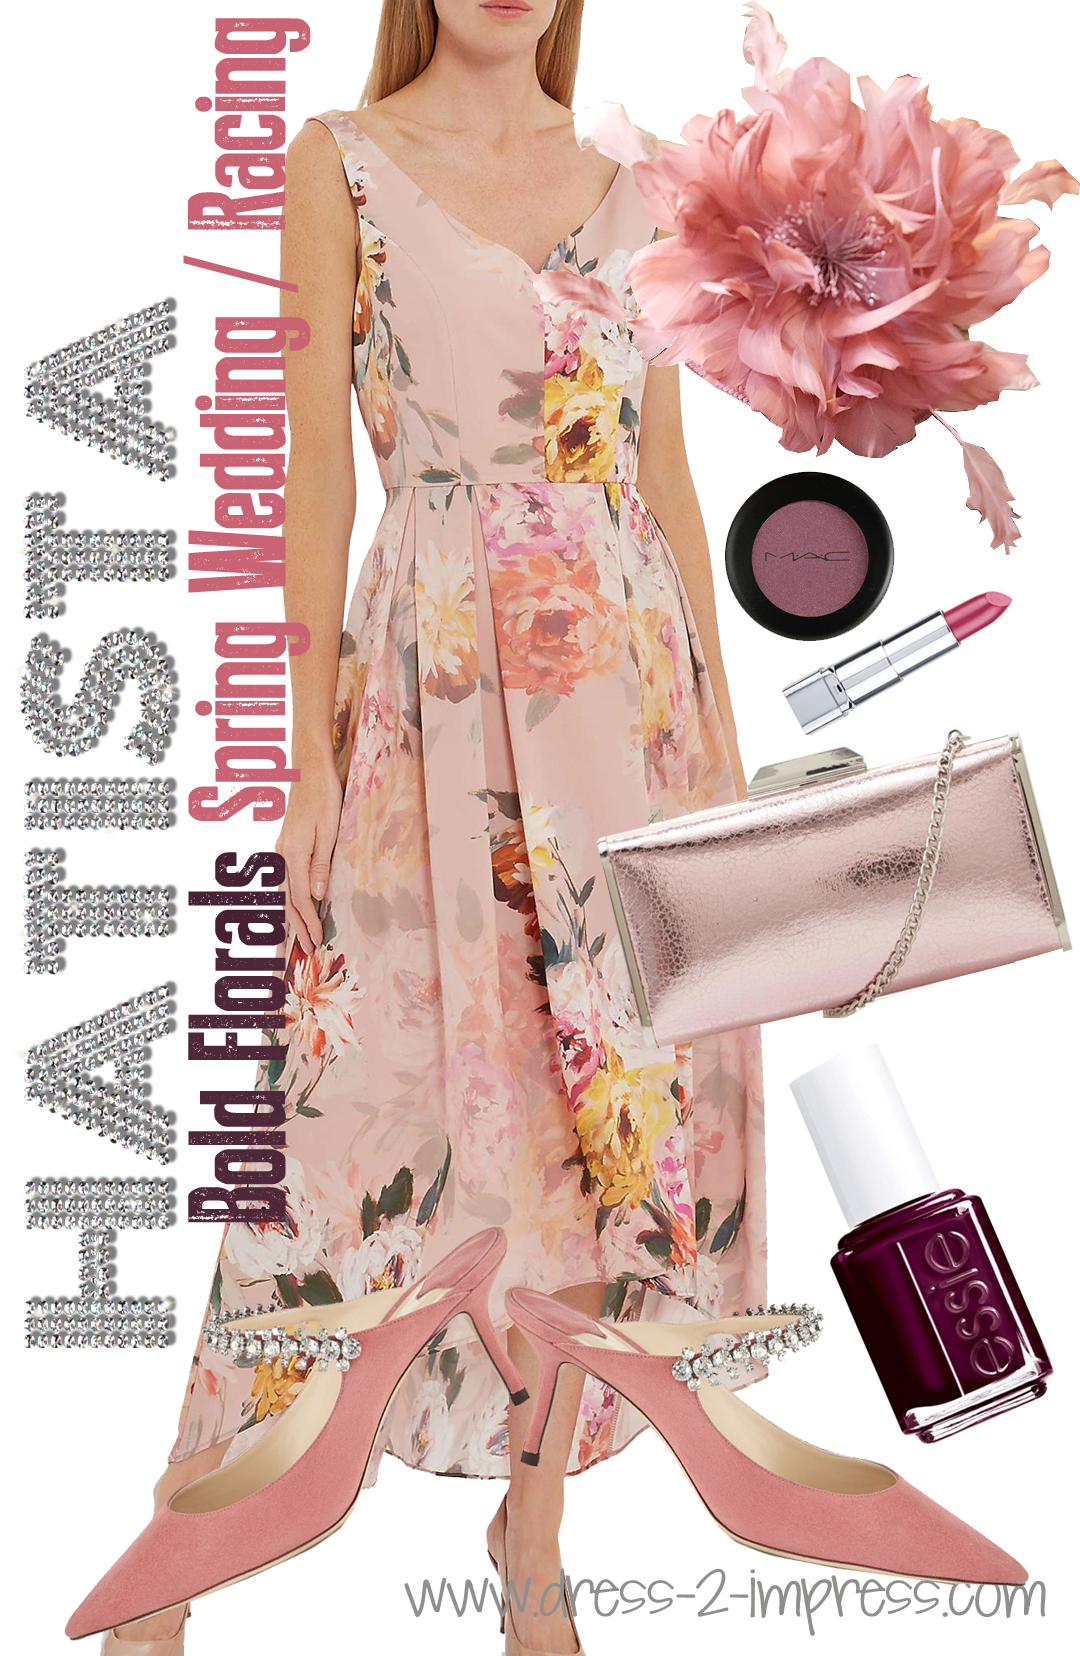 Spring Wedding Guest Floral Outfit. Outfit ideas for Royal Ascot Ladies Day. What to wear for Royal Ascot. Floral Dresses. What to wear for Ladies day at the races. Royal Ascot Dress Code. #wearpink #royalascot #ascotoutfits #floraldress #jimmychoo #outfitideas